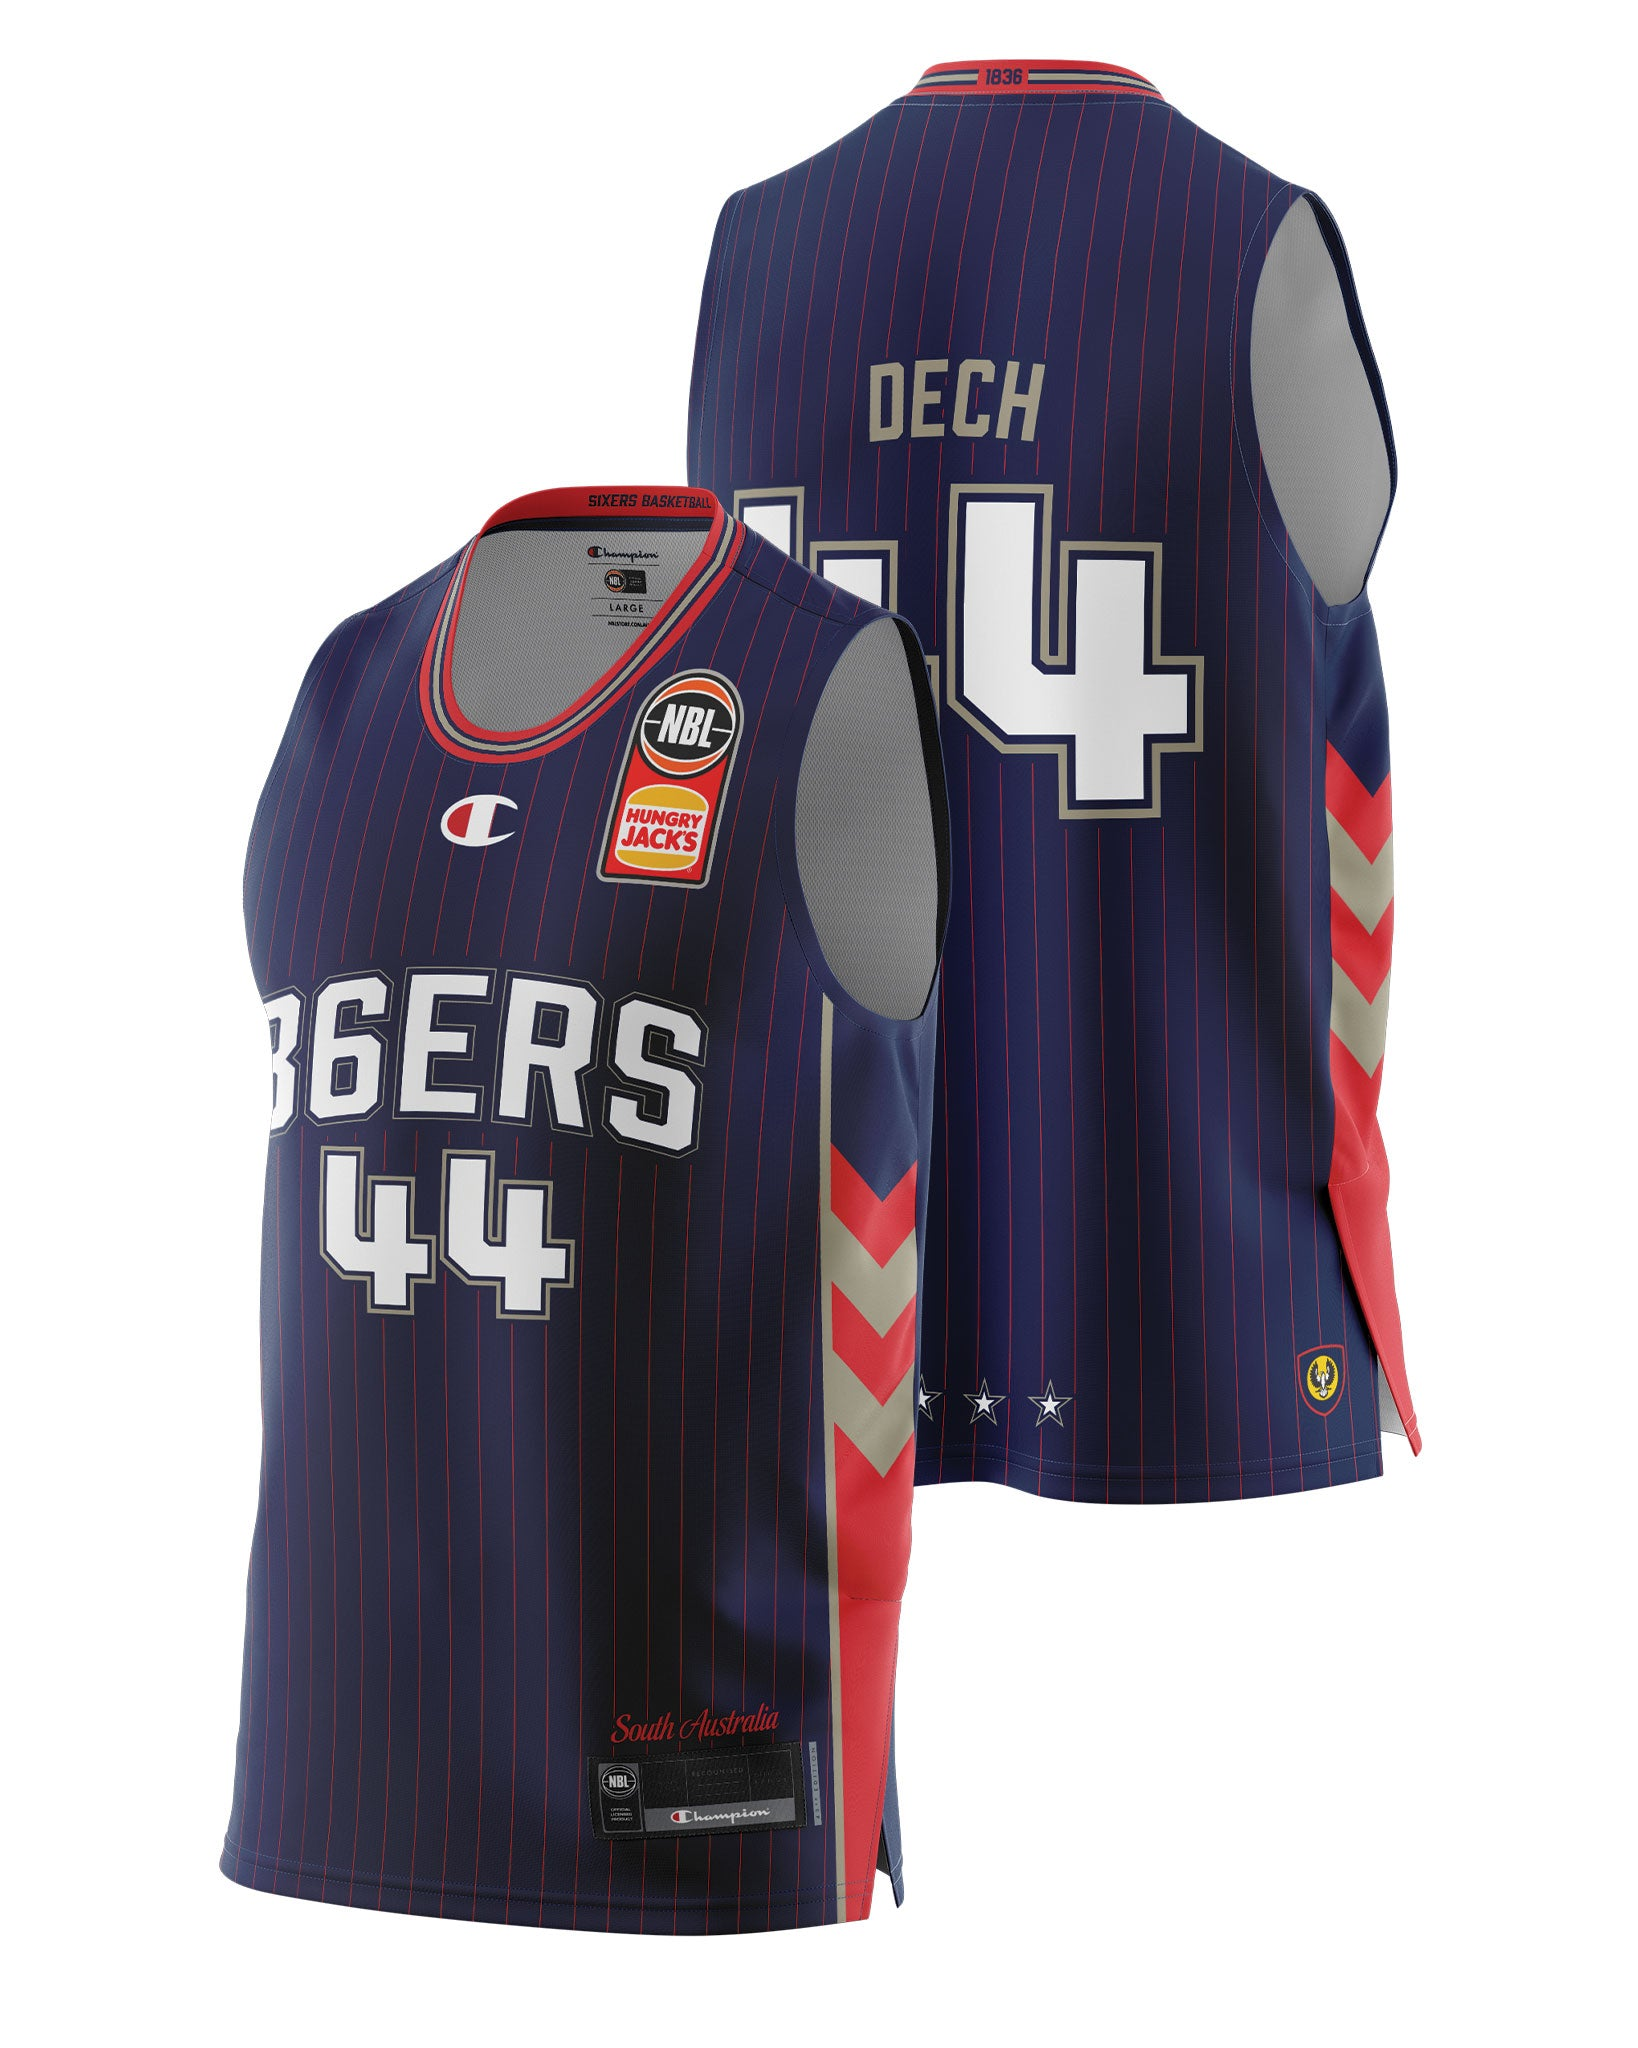 Adelaide 36ers 20/21 Authentic Home Jersey - Sunday Dech